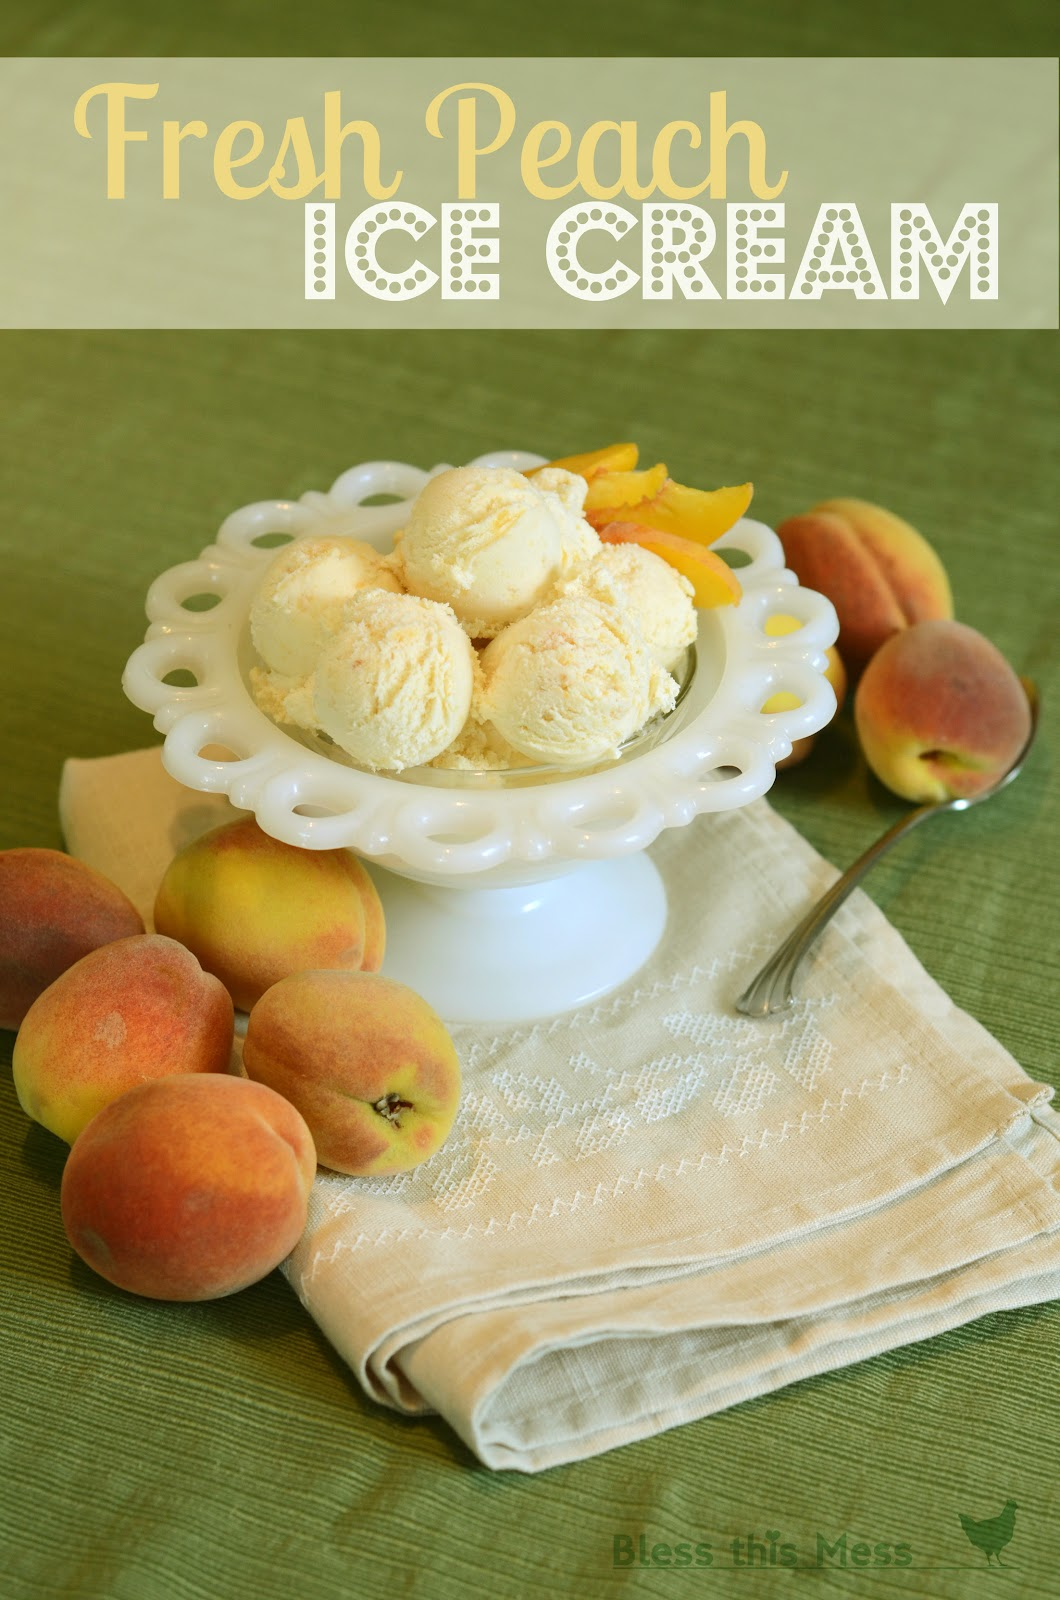 Fresh Peach Ice Cream - Bless This Mess